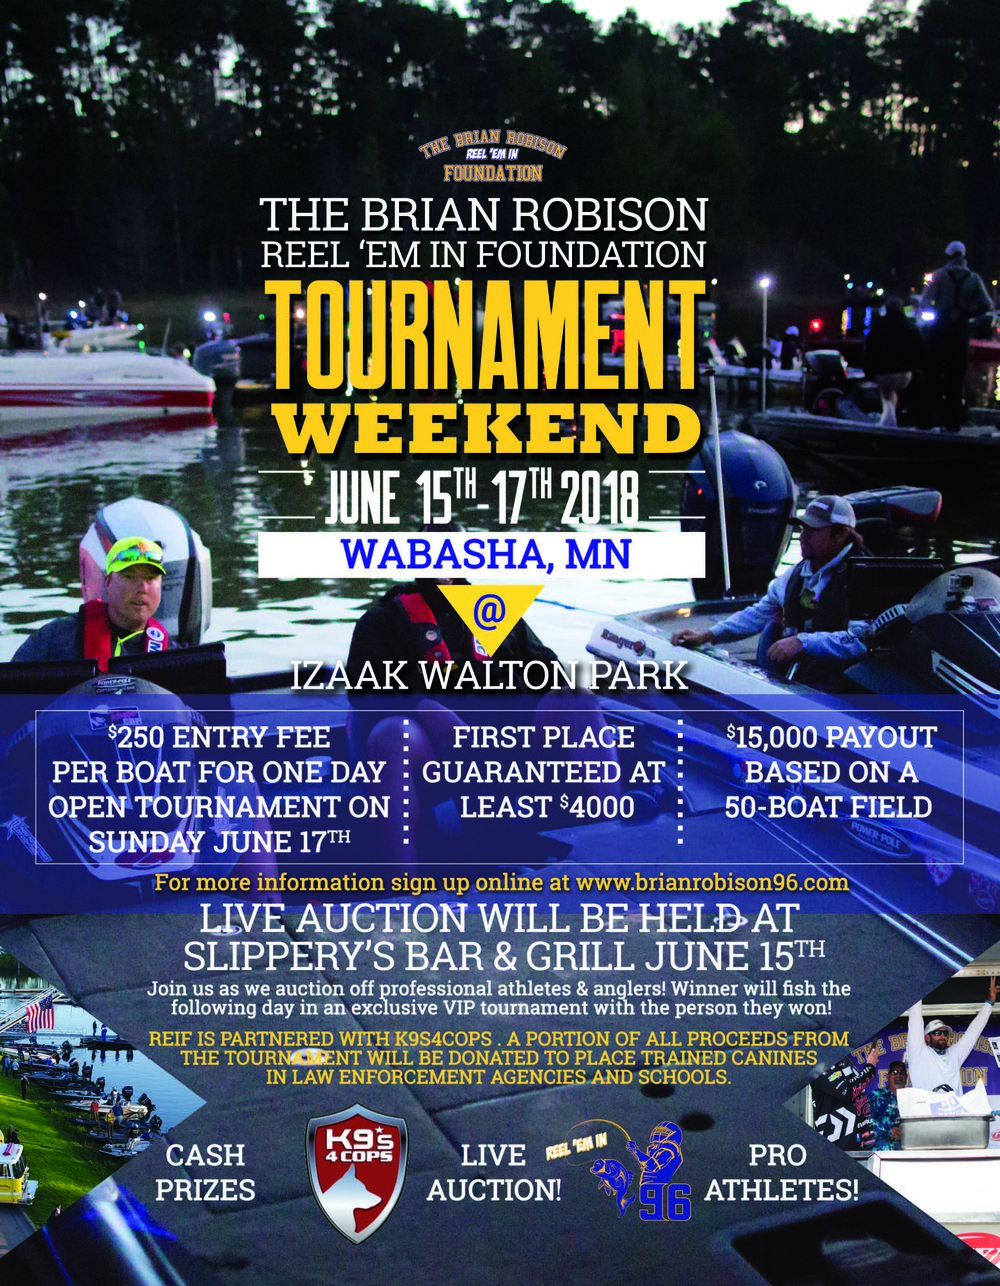 "2018 REEL 'EM IN OPEN TOURNAMENT    OFFICIAL  RULES   Interpretation of these rules will be left exclusively to the Tournament Director. In the event of a rule violation, the Tournament Director may impose such sanctions, as he deems appropriate, including, without limitation, disqualifications, forfeiture of prizes and prohibition from participation in subsequent tournaments. Decisions of the Tournament Director are final in all matters and are not subject to appeal, and are not reviewable by any court of law. The Reel 'Em In Foundation reserves the right to make needed changes to these rules in order to ensure the safety, welfare of the anglers, and/or the public and preserve the integrity of the Reel 'Em In Foundation. Any rule changes will immediately supersede all previously published copies of rules. It is your responsibility to read and understand the rules and how you are affected by not complying with the following rules. Every Angler will be required to sign an affidavit that he/she has read, understands and accepts all rules.    1. Participation and Eligibility:  Participation is open. Any person entering the event under the age of 18 years must be paired with a partner 18 years of age or older and also have the signature of their parent or legal guardian in the provided space on the official entry form. The Reel 'Em In Foundation reserves the right to refuse participation in any and all events to any individual or team at the discretion of the Tournament Director.   a. Guides that have guided on the tournament water within 30 days immediately preceding the event being entered are not eligible to compete.   2.  Federal, State and Local Laws:  All contestants must have a valid fishing license and are required to obey all federal, state and local laws and regulations.  3.  Teams : All Reel 'Em In Foundation tournaments are team events, but anglers may fish as individuals if they choose to do so.  4.  Pre Tournament Practice : All events have an off-limits period, which consists of the night prior to the tournament. No Contestant may be on designated tournament waters for any reason during the official off-limits period (this includes ""walking"" the shoreline, marinas, boat docks, etc. for the purpose of locating or catching fish). Tournament waters are also off-limits for the purpose of locating or catching fish following registration from 8:00 pm Friday evening until 1 hour before tournament start time .  5.  Registration : Anglers can enter online at www.brianrobison96.com, mail a completed entry form along with entry fee to P.O. Box 1050 Pinehurst, TX 77362 or may register in person at the onsite registration(go to website for Registration times).  6.  Insurance : A minimum of $100,000 liability insurance is recommended of all contestants utilizing their boats in any Reel 'Em In Foundation tournament.     7.  Safety : Safe boating must be observed at all times. Each Contestant is required to wear a fastened (fully zipped and/or all clips fastened), U.S. Coast Guard approved, personal flotation device anytime the combustion engine is in operation from launch until weigh-in. All boats must be equipped with an emergency ignition shut-off device, which must be securely attached to the driver's body any time the combustion engine is in operation. The driver must be seated in the driver's seat anytime the combustion engine is engaged in gear. Tournament days may be shortened or canceled due to unsafe weather or any conditions that would endanger the safety of the competitors at the Tournament Director's sole and absolute discretion. Competitors are allowed to leave the boat and seek shelter in bad weather, at which time no fishing may occur.  8.  Permitted Fishing Methods:  Only artificial lures may be used with the exception of pork trailers and biodegradable soft baits. Only one fishing rod per angler may be used at any one time. Additional rods may be in the boat and ready for use; however, each cast and retrieve must be completed before another cast is attempted or rod is used. Trolling as a method of fishing is prohibited. Switching or sharing fish with other teams or individuals is a violation of these rules and will result in immediate disqualification. All Bass must be caught alive, in a conventional, sporting manner. When sight fishing for Bass, all fish must be hooked inside the mouth to be counted as a legal fish (this will be a polygraph question). All angling must be conducted from the boat. At no time may a Contestant leave the boat to land a fish, or to make the boat more accessible to fishing waters.   9.  Sportsmanship and Conduct : All contestants are required to follow high standards of sportsmanship, courtesy, safety and conservation. Any infraction of these fundamental sporting principles may be deemed cause for disqualification. Maximum courtesy must be practiced at all times, especially with regard to boating and angling in the vicinity of non-competitors who may be on tournament waters. Any act of a competitor, which reflects unfavorably upon the Reel 'Em In Foundation's effort to promote fisheries conservation, clean waters, and courtesy, shall be reason for disqualification. Other examples of conduct not complying with these standards include, but are not limited to, the following:  Consumption and/or possession of alcoholic beverages or any mind-altering substance during tournament hours extending through the weigh-in procedure;   Any previous conviction, charge, arrest, or investigation for a felony, a crime involving moral turpitude, or a crime related to, arising out of, or involving any fishing tournament or event, except with full, prior written disclosure to the Tournament Director under oath and by affidavit of all facts and circumstances surrounding such conviction, charge, arrest, or investigation at least ten (10) days before the event being entered, and thereafter subject to the Tournament Director's sole and absolute discretion that such conviction, charge, arrest, or investigation does not result in the Contestant's honesty, integrity, character or qualifications to enter the event being unreasonably questionable.   Actions or words which reflect unfavorably upon efforts to promote safety, sportsmanship, and fair competition;   Disqualification from the Reel 'Em In Foundation Tournament or other fishing organizations that resulted from rule violations that result in a Contestant's honesty, integrity, character, and qualifications for entry into a Reel 'Em In Foundation event being questionable in the Tournament Director's sole and absolute discretion.   Upon review of the circumstances by Reel 'Em In Foundation and the Tournament Director, the Tournament Director shall have the right to refuse any application, or to deny a confirmed application, by returning the entry fee of a previously accepted application, or disqualifying a Contestant. Reel 'Em In Foundation reserves the right to place an official observer in a Contestant's boat at any time during competition hours.   10.  Assistance:  During the hours of competition, Contestants may not receive fishing information from non-competitors or follow a non competitor's boat or participate in the placing of markers by non competitors or participate in the practice of ""hole sitting"" by anyone. The use of mobile communication devices such as cellular telephones, marine radios, walkie-talkies, CBs, pagers or any electronic device to obtain and use fishing information from anyone during tournament hours is strictly prohibited. In the event of an emergency situation, competitors should call 911 first and then notify the Tournament Director.   11.  Boat and Horsepower Regulation:  Each boat must have all required U.S. Coast Guard safety equipment. Boats must contain a properly aerated live well space to maintain alive a limit catch of Bass. Maximum horsepower for all outboards used in tournament competition may not exceed the horsepower limitations as set by the U. S. Coast Guard in such vessel. Falsifying information on entry forms or altering the horsepower numbers on the motor or rating plate to conceal such limitations will be cause for disqualification from the tournament. No Contestant may have a platform, raised deck, or ladder which is higher than the gunnel of the boat. Standing on the fishing seats or outboard motor will not be allowed in Reel 'Em In Foundation events. No air or jet drive boats will be permitted during competition days.   Fuel may be carried only in factory-installed (built-in) fuel tanks. Optional remote engine fuel tanks must be factory or factory authorized dealer installed and be strapped or otherwise secured. Any additional fuel used during the tournament day must be purchased from a retail facility open to the public and pumped through a hose with a nozzle.   12.  Permitted Fishing Locations:  Contestants may fish anywhere on tournament waters accessible by boat, except areas designated as ""off limits"", ""no boats"", ""keep out"", ""restricted"" or ""no fishing"" (or similar language or markings intended to restrict public access) by state or federal officials, or within 50 yards of a competitor's boat which was first anchored. An anchored boat is a boat held in a stable position by a line attached to a weight or by a Power Pole or similar shallow water anchor with the trolling motor in the up position. The act of moving Bass from one area of the lake to another confined area of the same lake at any time, whether or not during official practice days or competition days, is not permitted.   13.  Off-Limits Areas:  Such areas established by federal, state and local laws and areas announced by the Reel 'Em In Foundation. Contestants may not fish inside the established ""off-limits"" areas. Violation of the rule will result in immediate disqualification.   14.  Trailering:  No Trailering unless otherwise noted by the Tournament Director due to weather or other conditions. In this case, Contestants may launch their boat at any ramp other than the designated home tournament location, but all Contestants must abide by take-off rules and official ""last cast"" and ""in weigh in line by"" rules.  15.  Scoring:  Will be determined by the official weight of each angler's catch during the tournament. Only Largemouth, Spotted, Red Eye or Smallmouth Bass (collectively, ""Bass"") are accepted species. The limit will be five Bass per team. Any Contestant who possesses more than the tournament limit, unless actively culling, will have their catch for that day disqualified. Culling must be done immediately. The minimum official measurement will be based on the lake limit. Bass presented for weigh-in, which fail to measure the prescribed length limit, will result in, but not limited to loss of that particular fish and a one-pound penalty to the weight of the remaining fish. Each Contestant's catch must be presented in an official weigh-in bag and verified by the signature of at least one team member. Bass will be measured with mouth closed, tail compressed and swiped to achieve overall greatest length. A measuring board will be provided at check-in and will serve as the official measuring standard for Reel 'Em In Foundation events. It is the contestant's responsibility to ensure all fish presented for weigh-in are of legal length according solely to the Reel 'Em In Foundation official measuring board.   16.  Live Fish:  Every effort must be made to keep bass alive through the use of a properly aerated live well. The use of chemical live well additives which promote the healthy return of bass to their natural habitat are recommended. A half pound (.50) penalty will be deducted for each dead Bass presented for weigh-in. Culling of dead bass is prohibited. No dead bass will be eligible for Big Bass awards or prizes.   17.  Late Penalty:  Contestants who are not at the official check-in point at the appointed time will be assessed a ONE (1) pound per minute penalty from their total weight including any weight to be counted toward a big Bass award. Any Contestant more than 15 minutes late will forfeit that day's catch.   18.  Ties : All ties for cash prizes will be split equally among the teams involved  19.  Polygraph : Polygraph exams will be administered on-site at the event. The first place team, big bass and a team randomly selected will automatically be tested. Each contestant who fishes a Reel 'Em In Foundation event also agrees to submit to a polygraph examination should it be deemed necessary at a time and location determined by the Tournament Director following the competition. Failure to pass the examination will result in disqualification.     20.  Protest and Reporting Procedure:  All protests must be submitted in writing along with a $50 cash deposit within fifteen (15) minutes of the last person who weighed-in to the tournament director or designated tournament official. The protestor also agrees that if there is a question with regards to verifying the protest charge, he or she may be subject to a polygraph exam and agree to testify in a court of law if necessary. If the Tournament Director, or polygraph, upholds the protest, the cash deposit shall be returned to the contestant submitting the protest.   Last, but not least please be courteous and have fun! You are a huge part of this great cause that will effect the lives of many! Thank You."